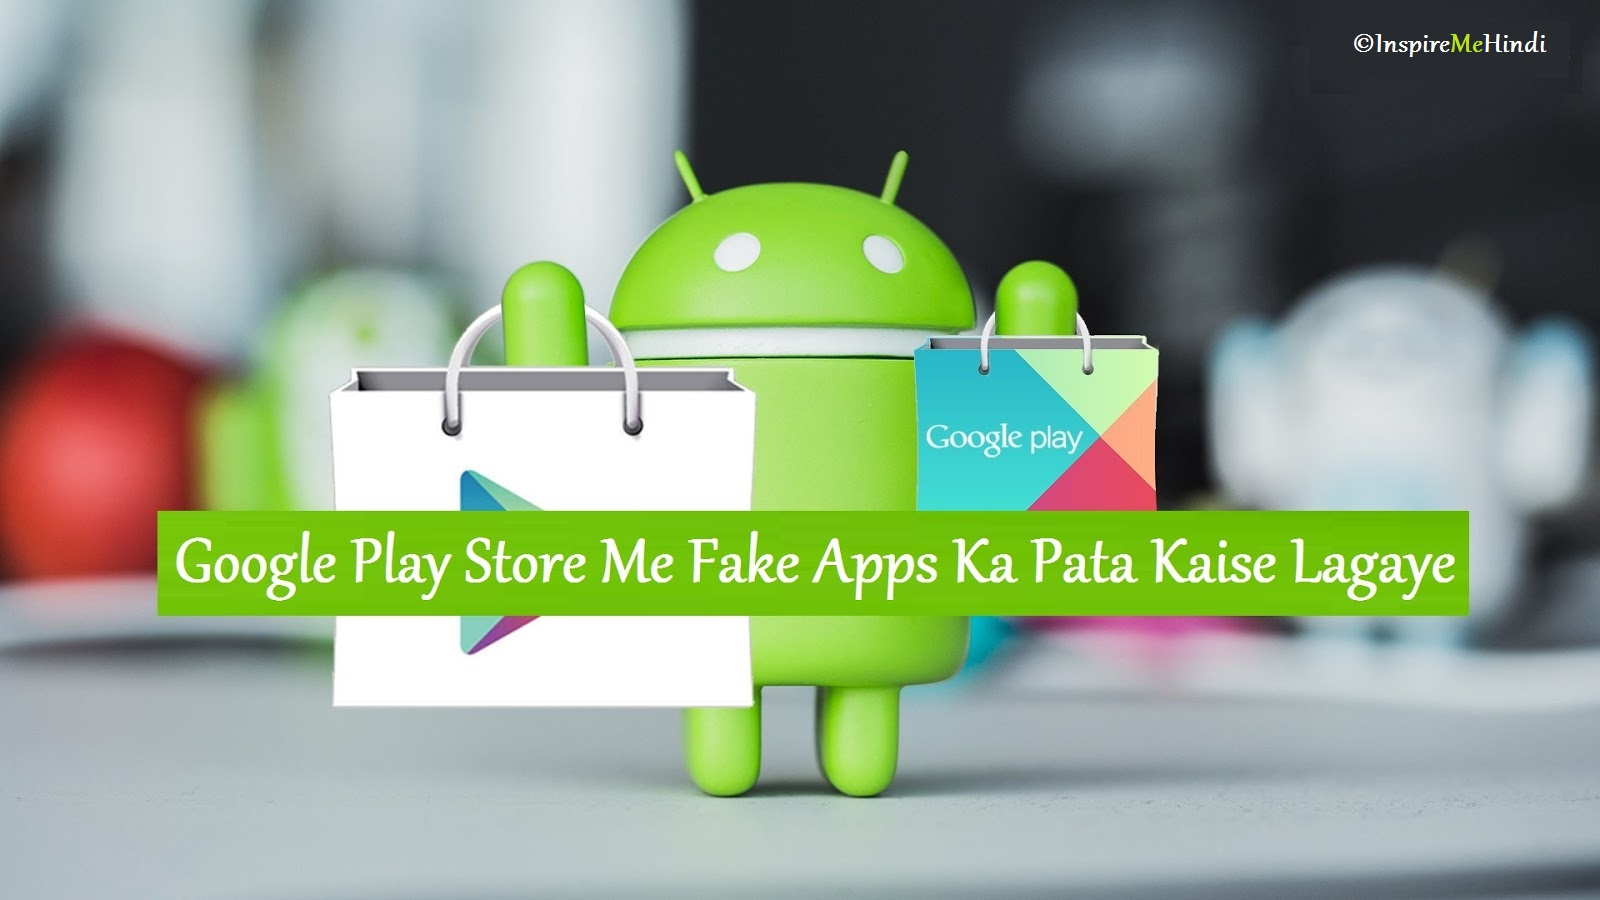 Fake Apps Ka Pata Kaise Lagaye